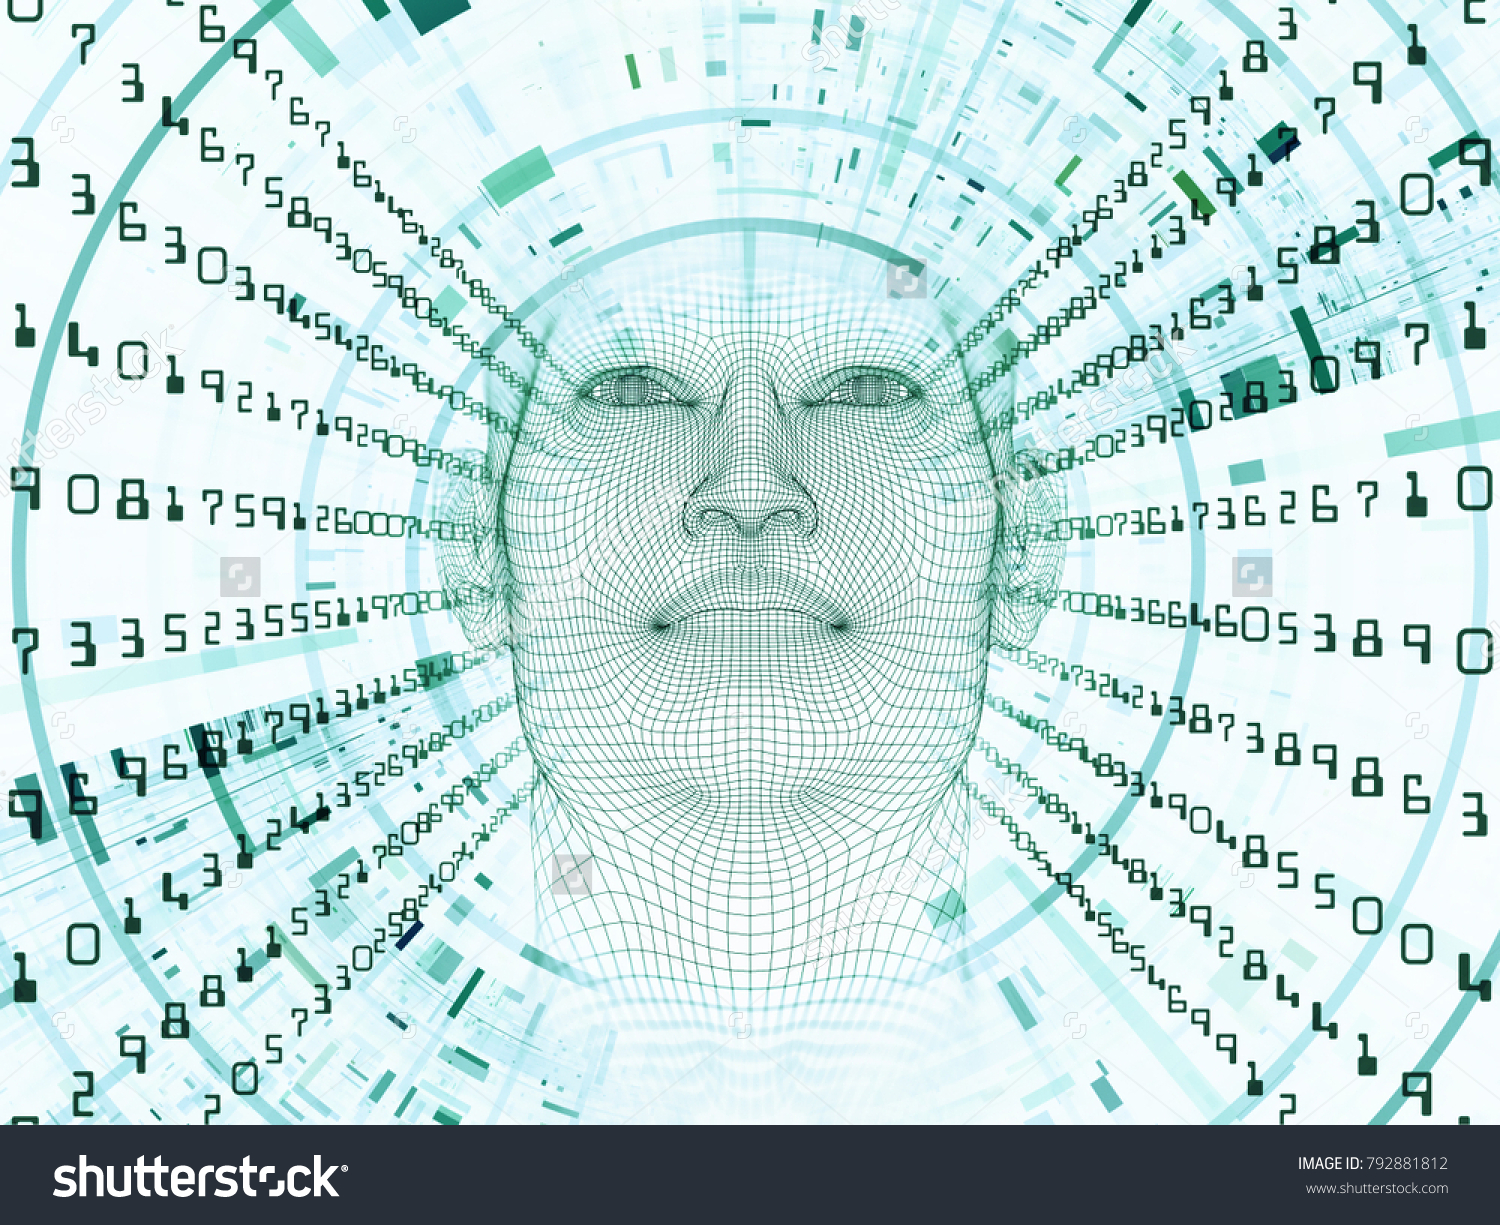 3 D Rendering Mind Field Series Graphic Stock Illustration 792881812 ...